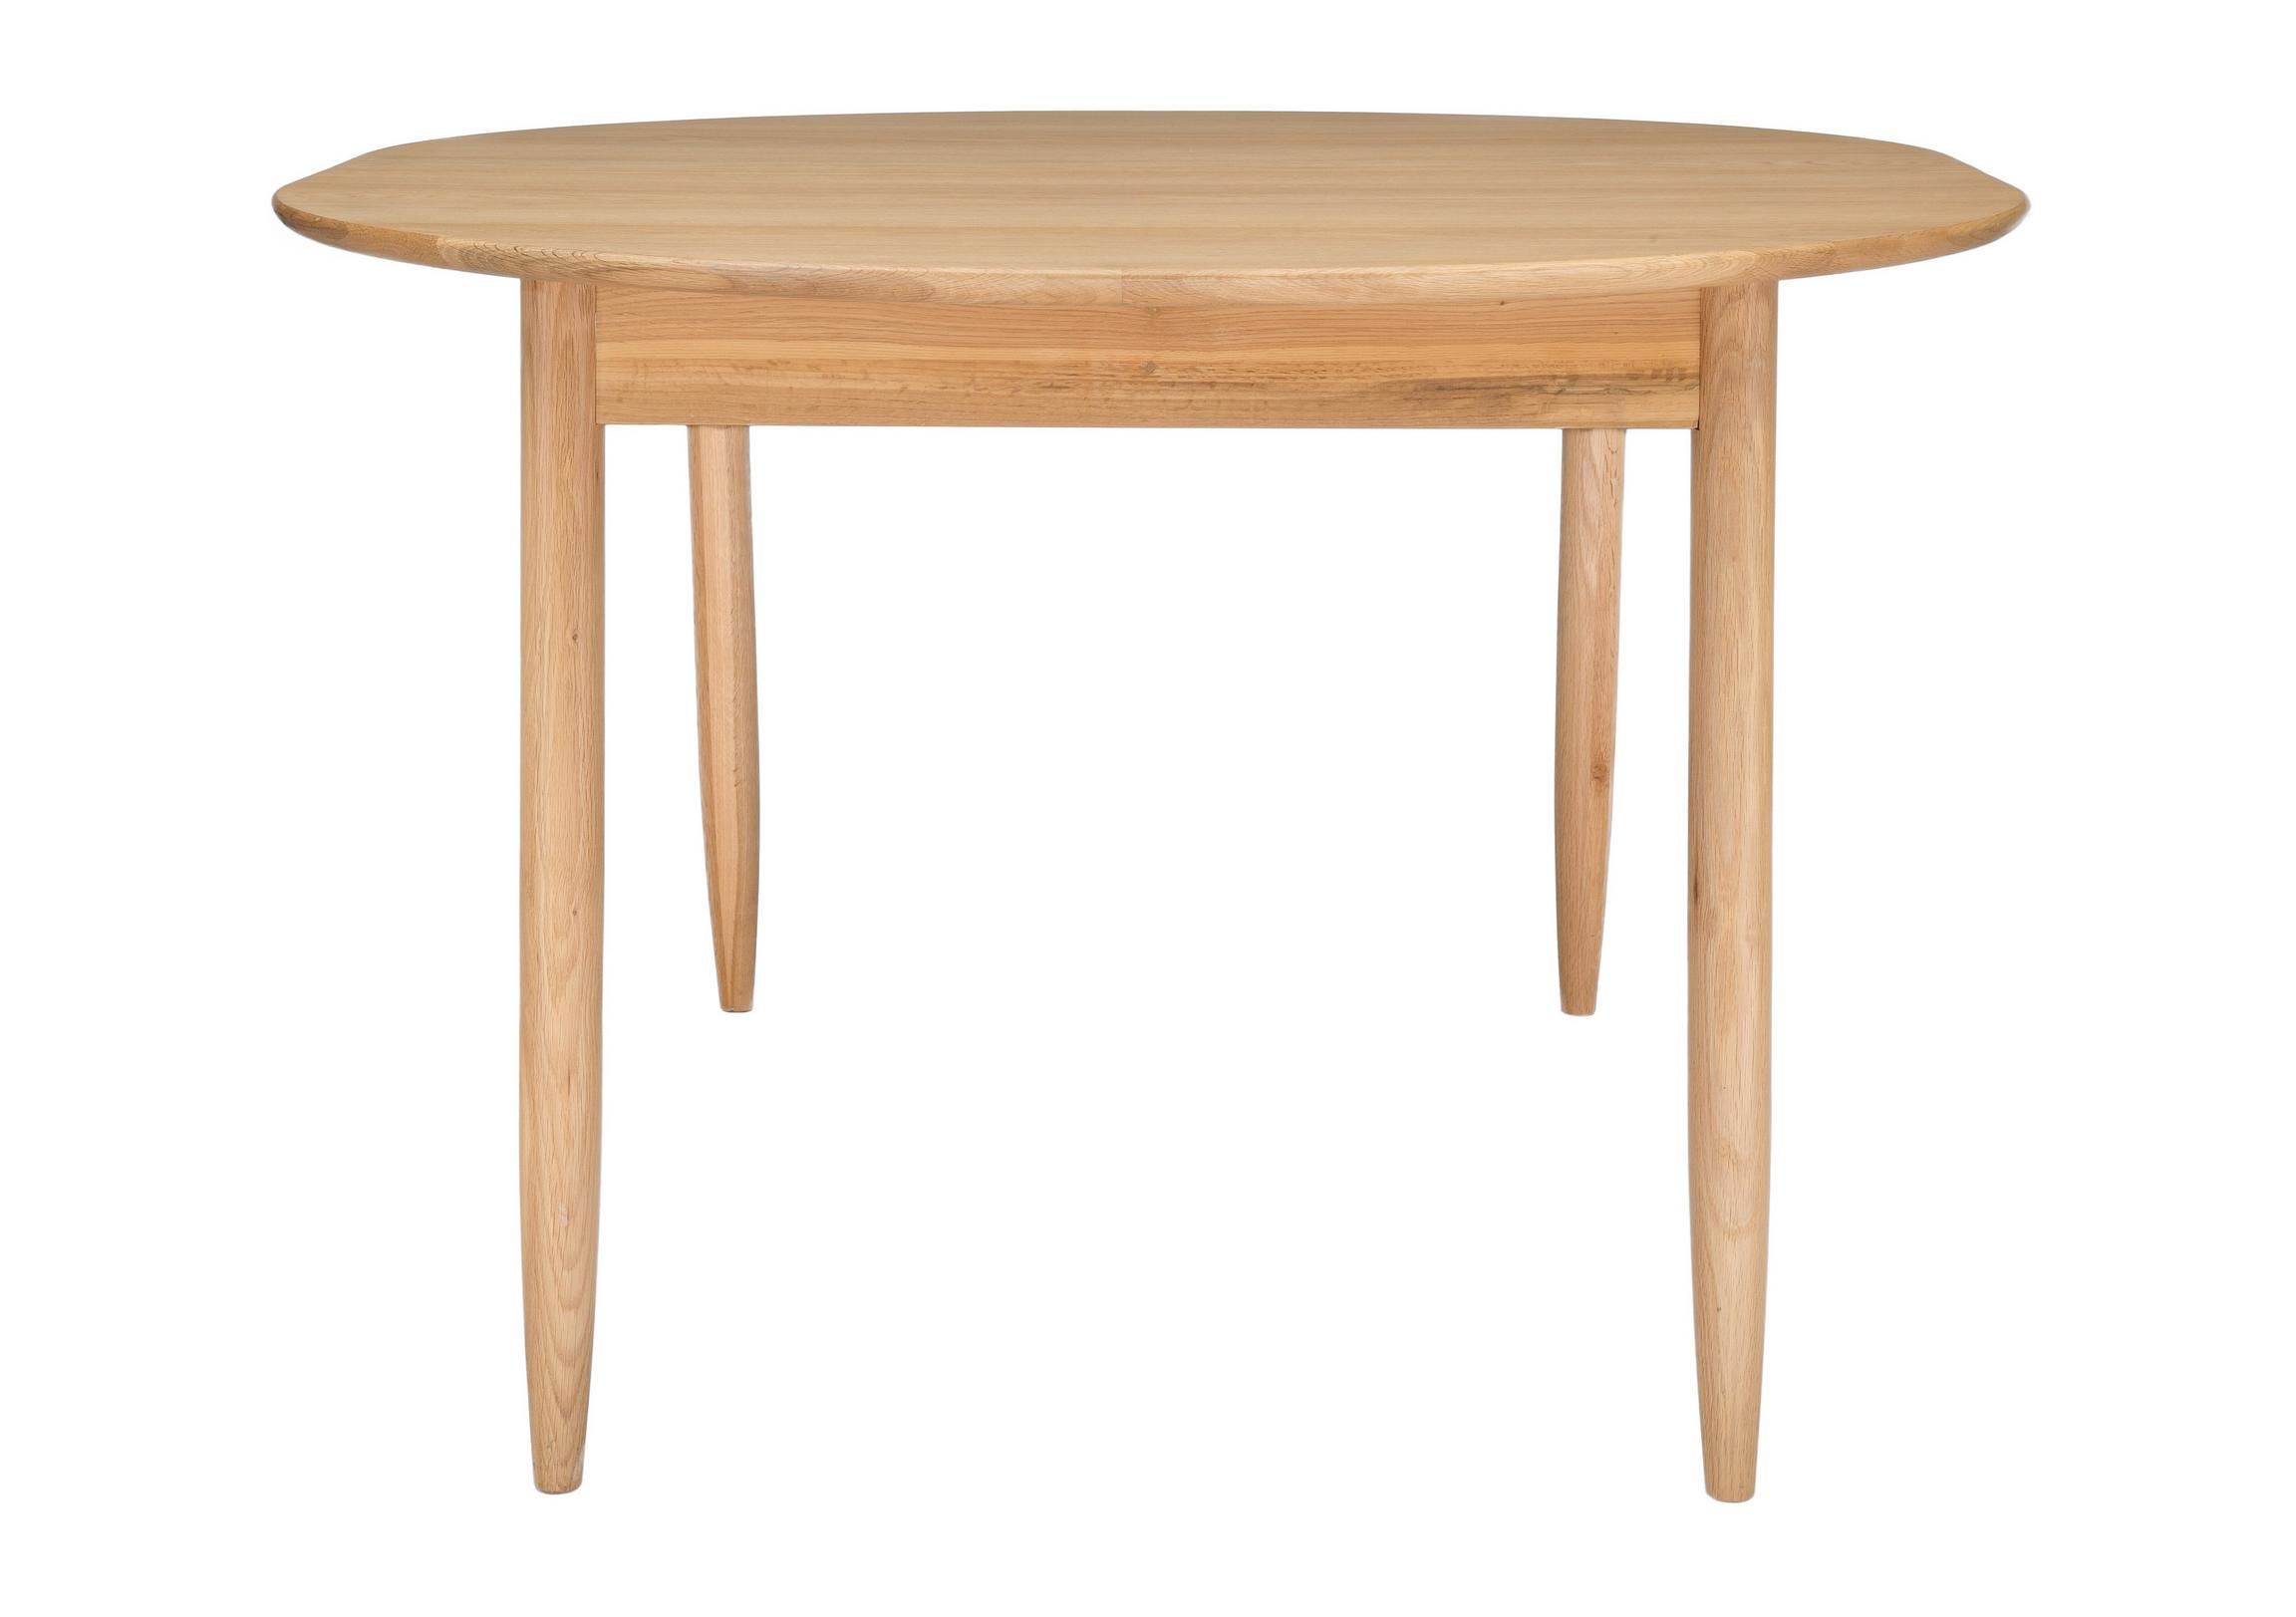 Teramo small extending dining table loading images